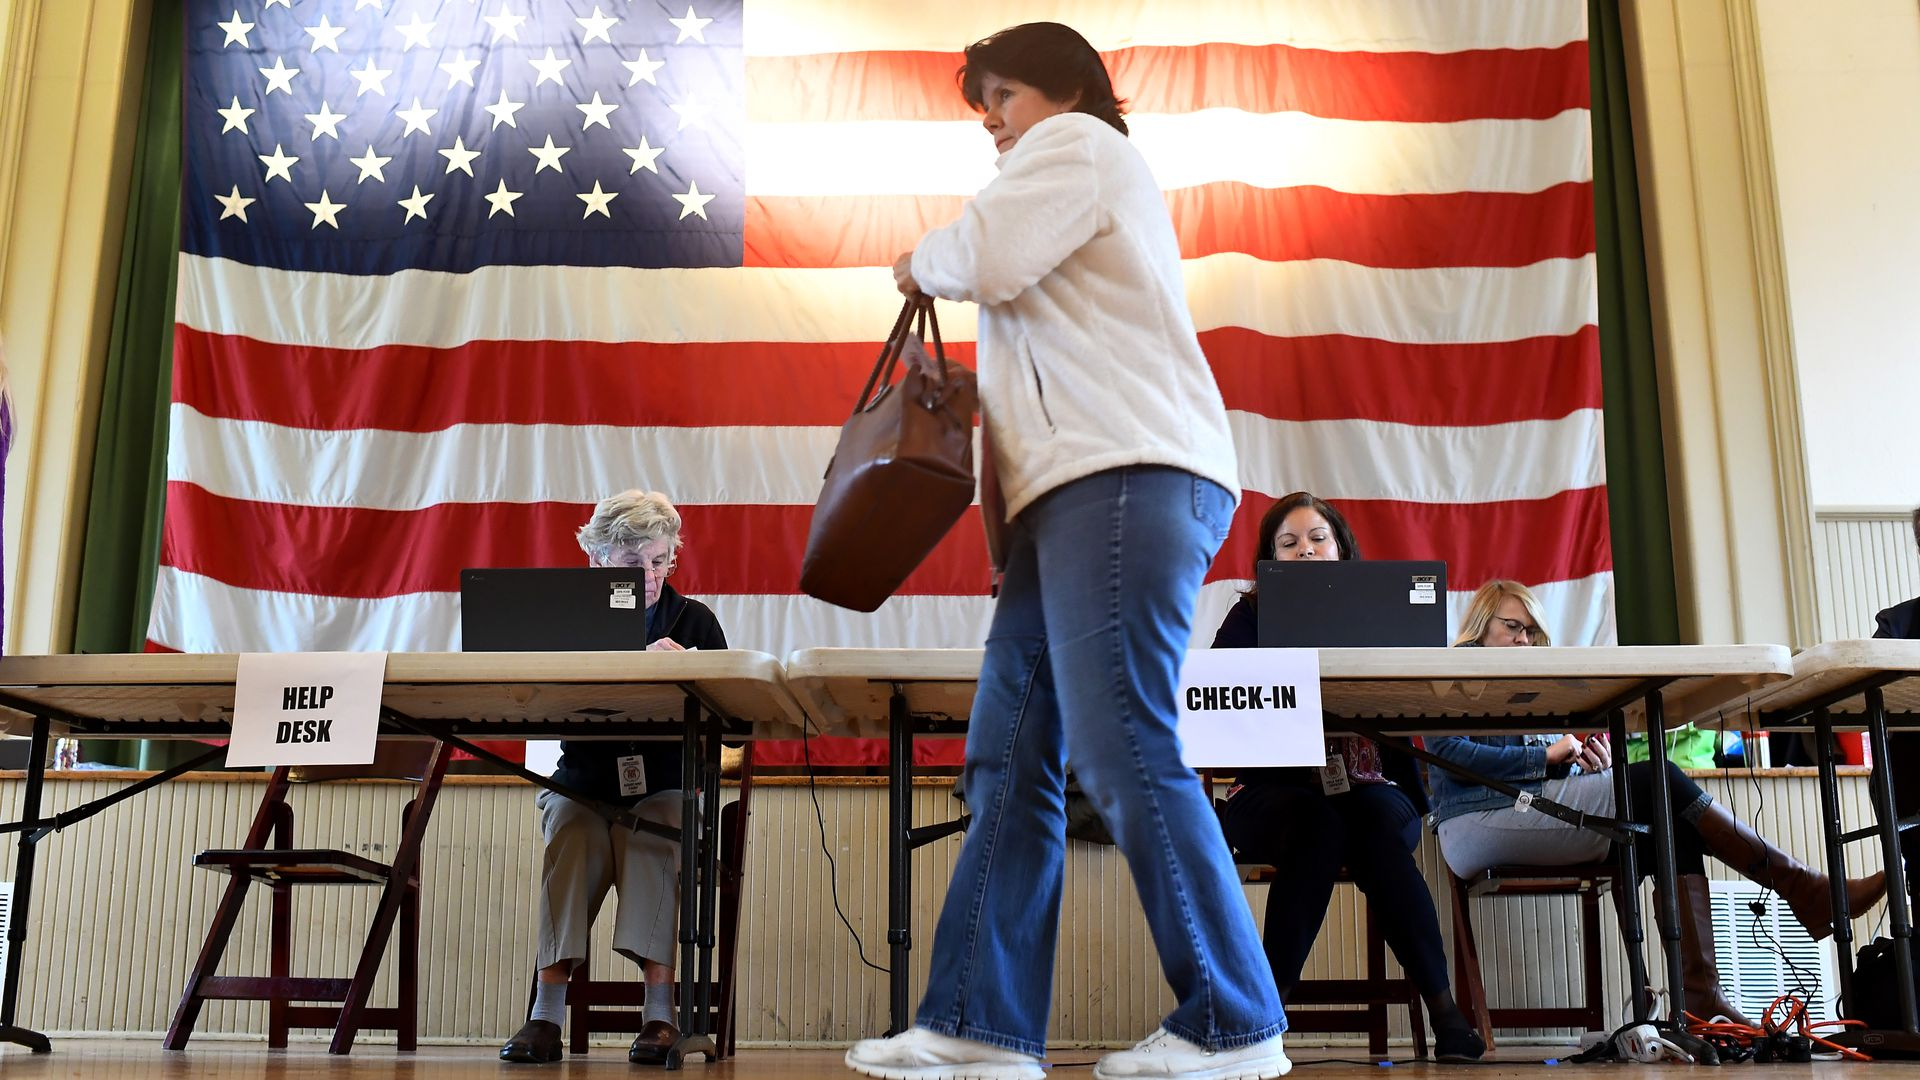 A woman votes in Virginia, with a large American flag lit up behind her as she walks.